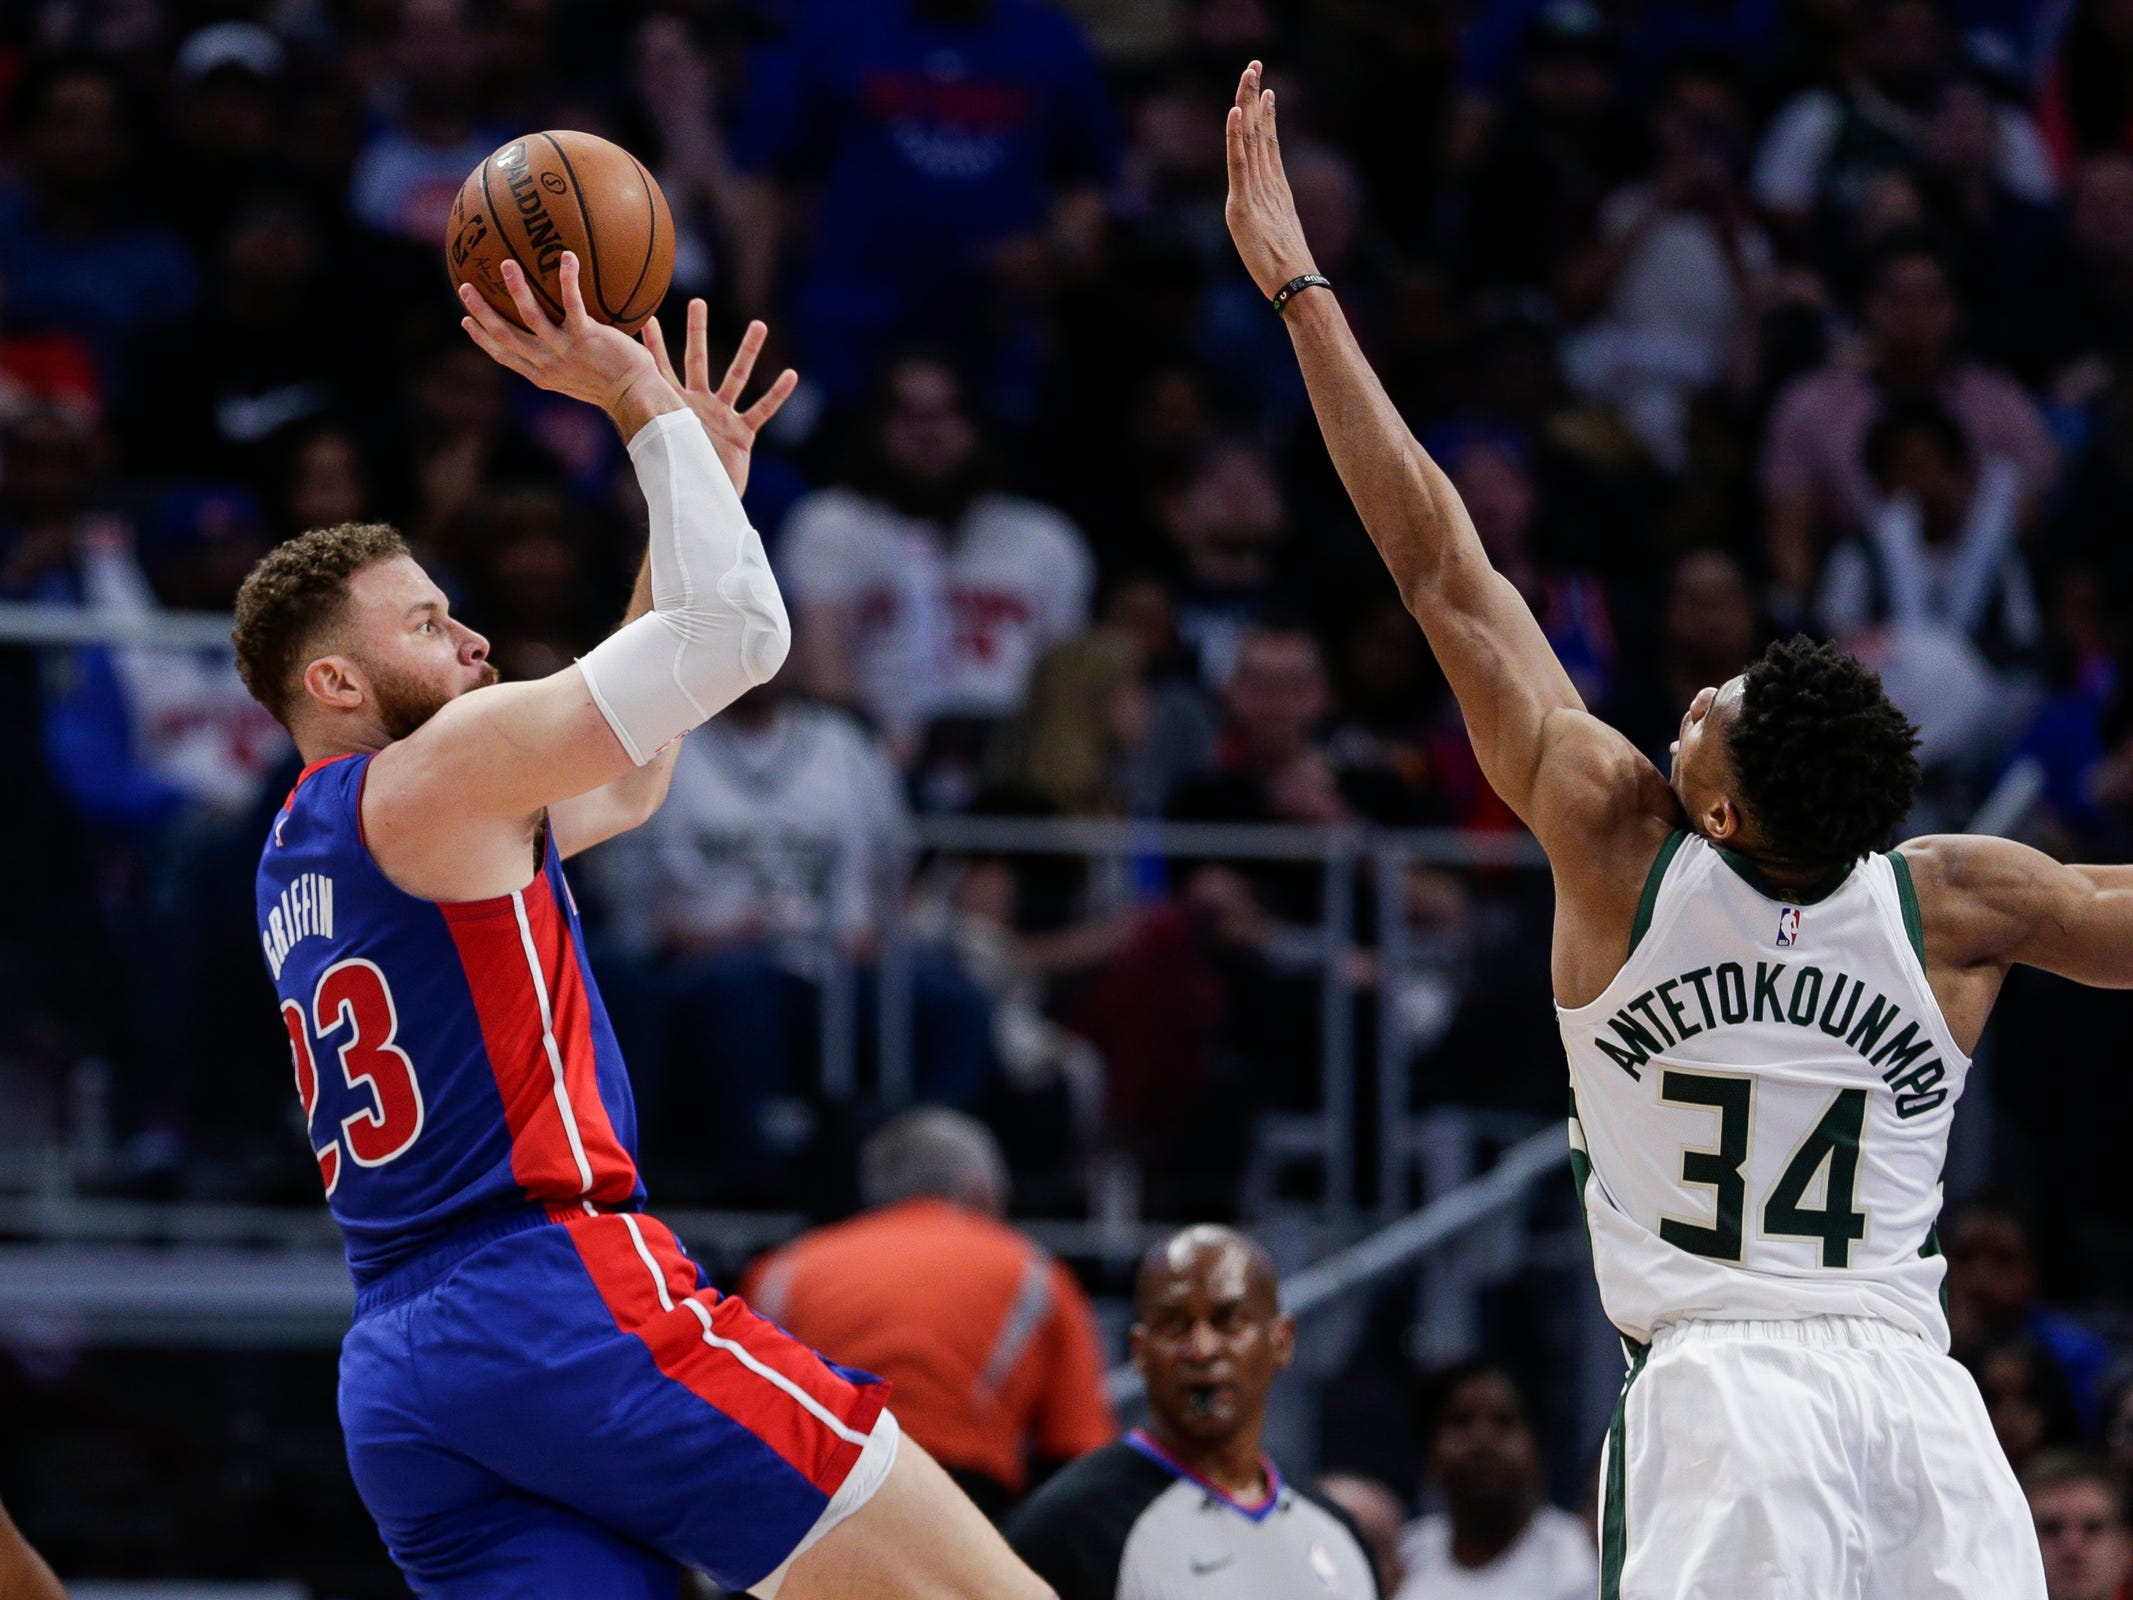 Detroit Pistons show fight in Game 4. That means more than series result